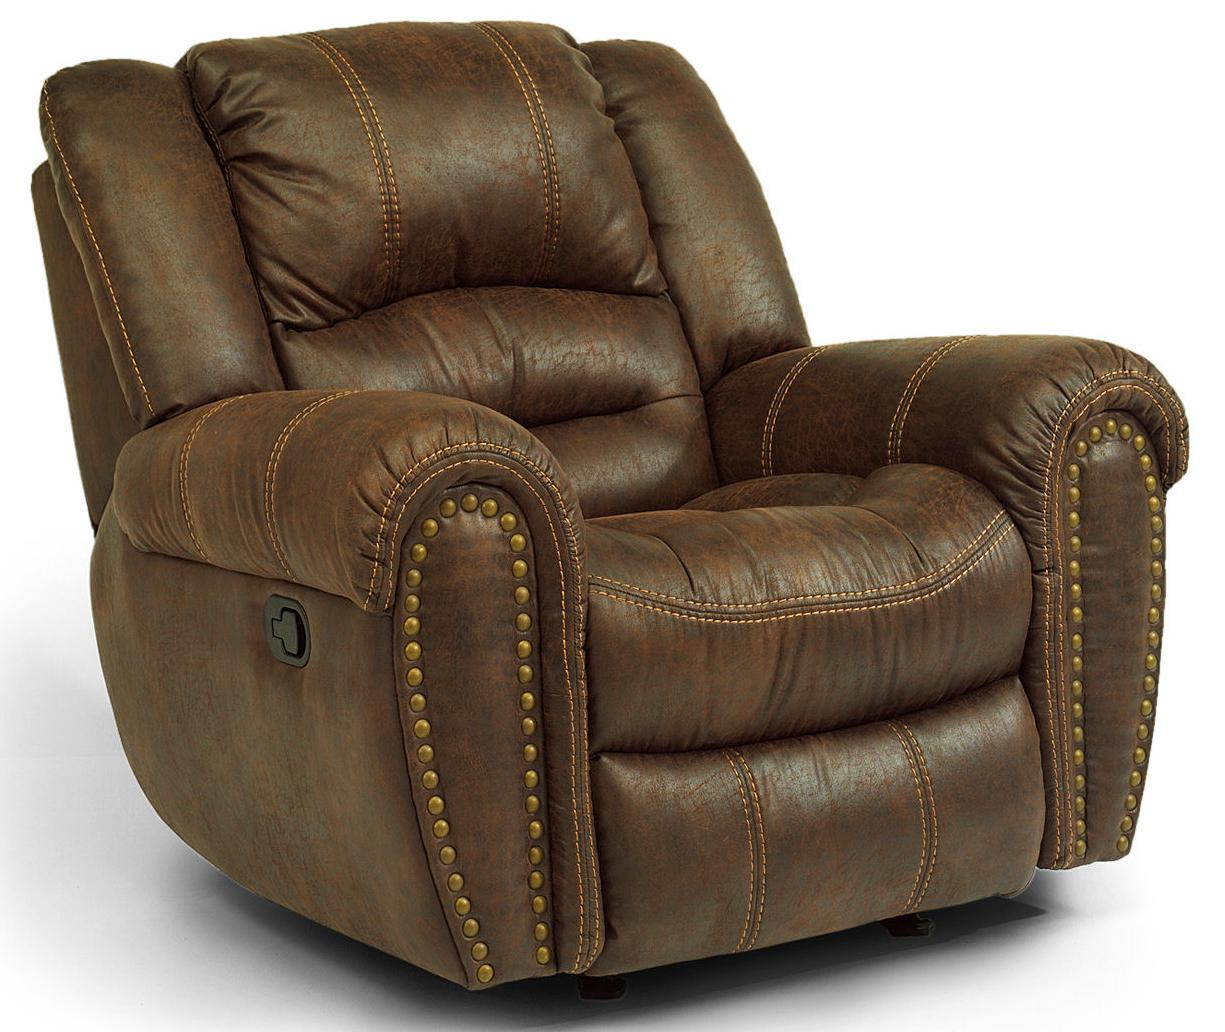 Flexsteel Latitudes - Downtown Power Recliner - Item Number: 1710-50P